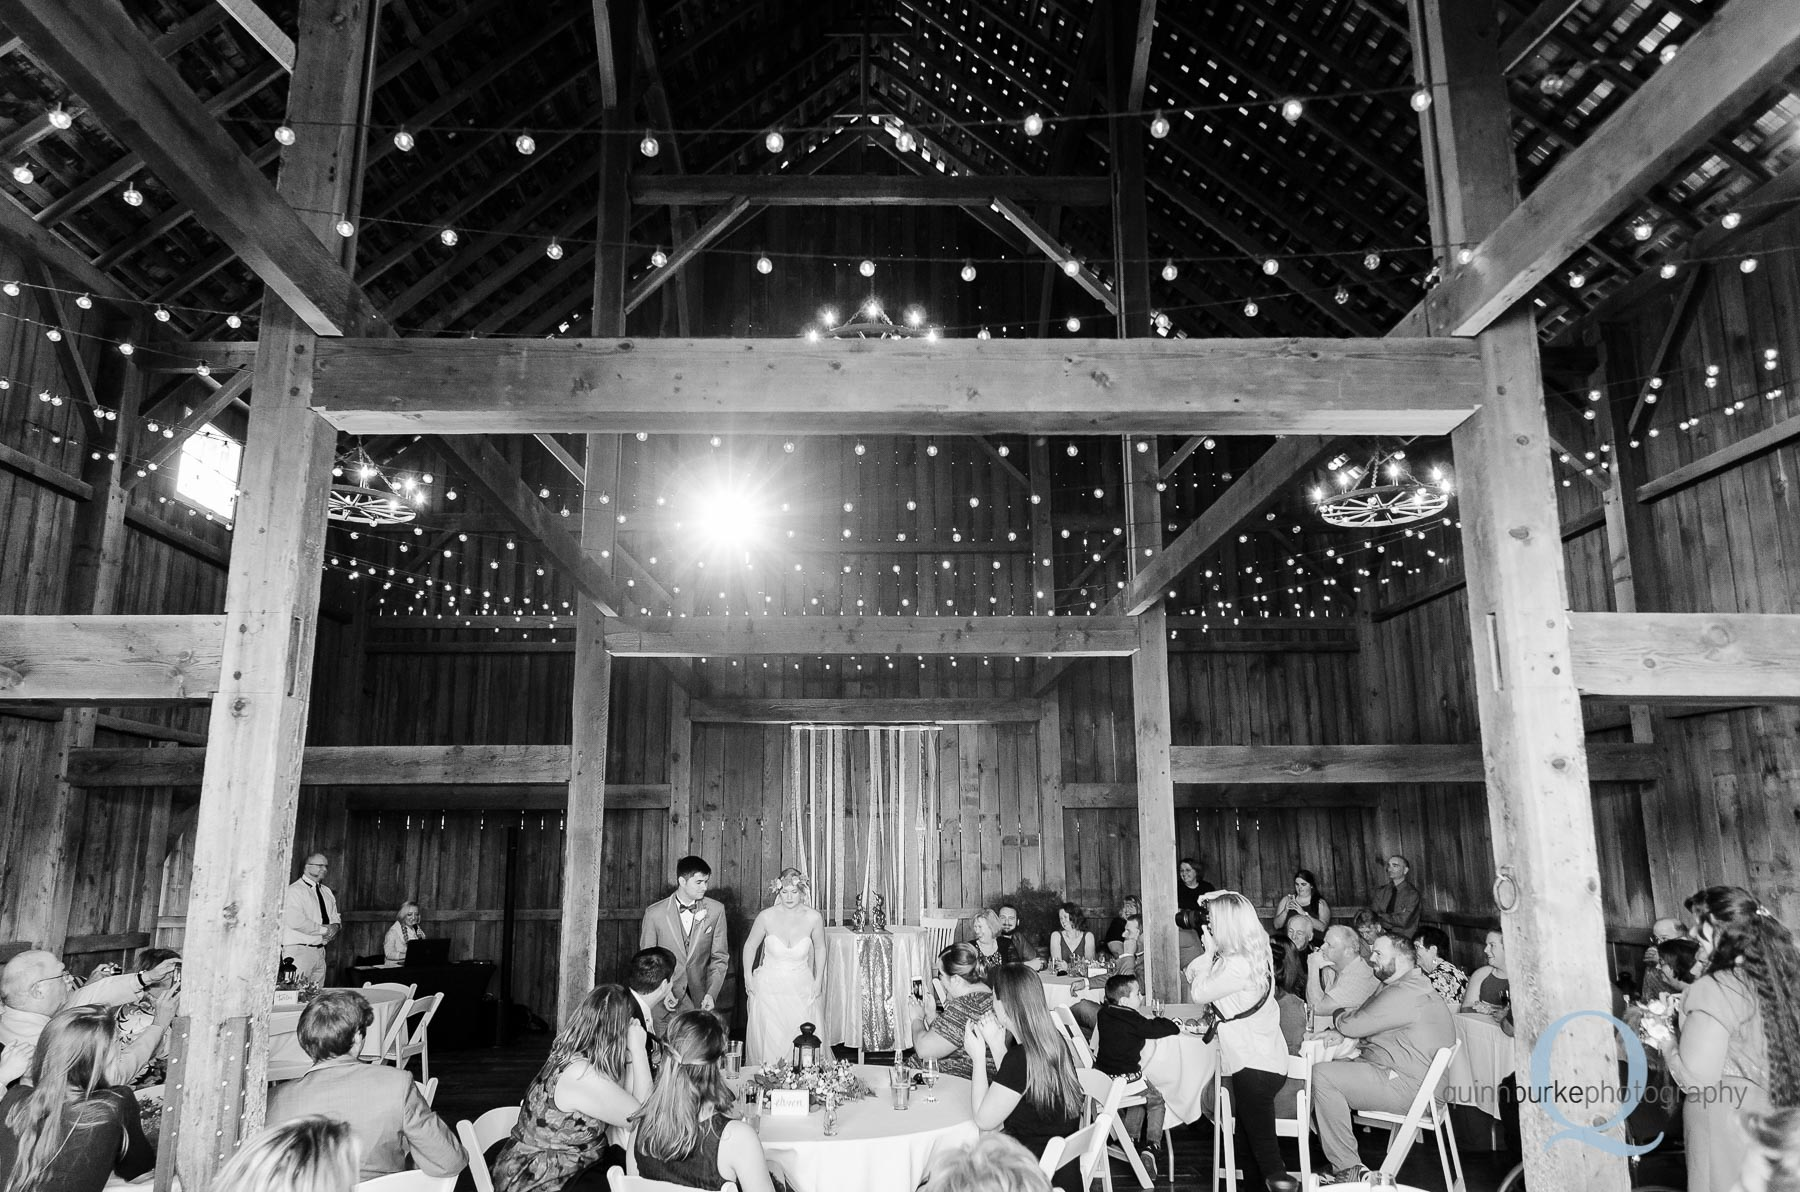 Perryhill Farm barn wedding reception in Oregon